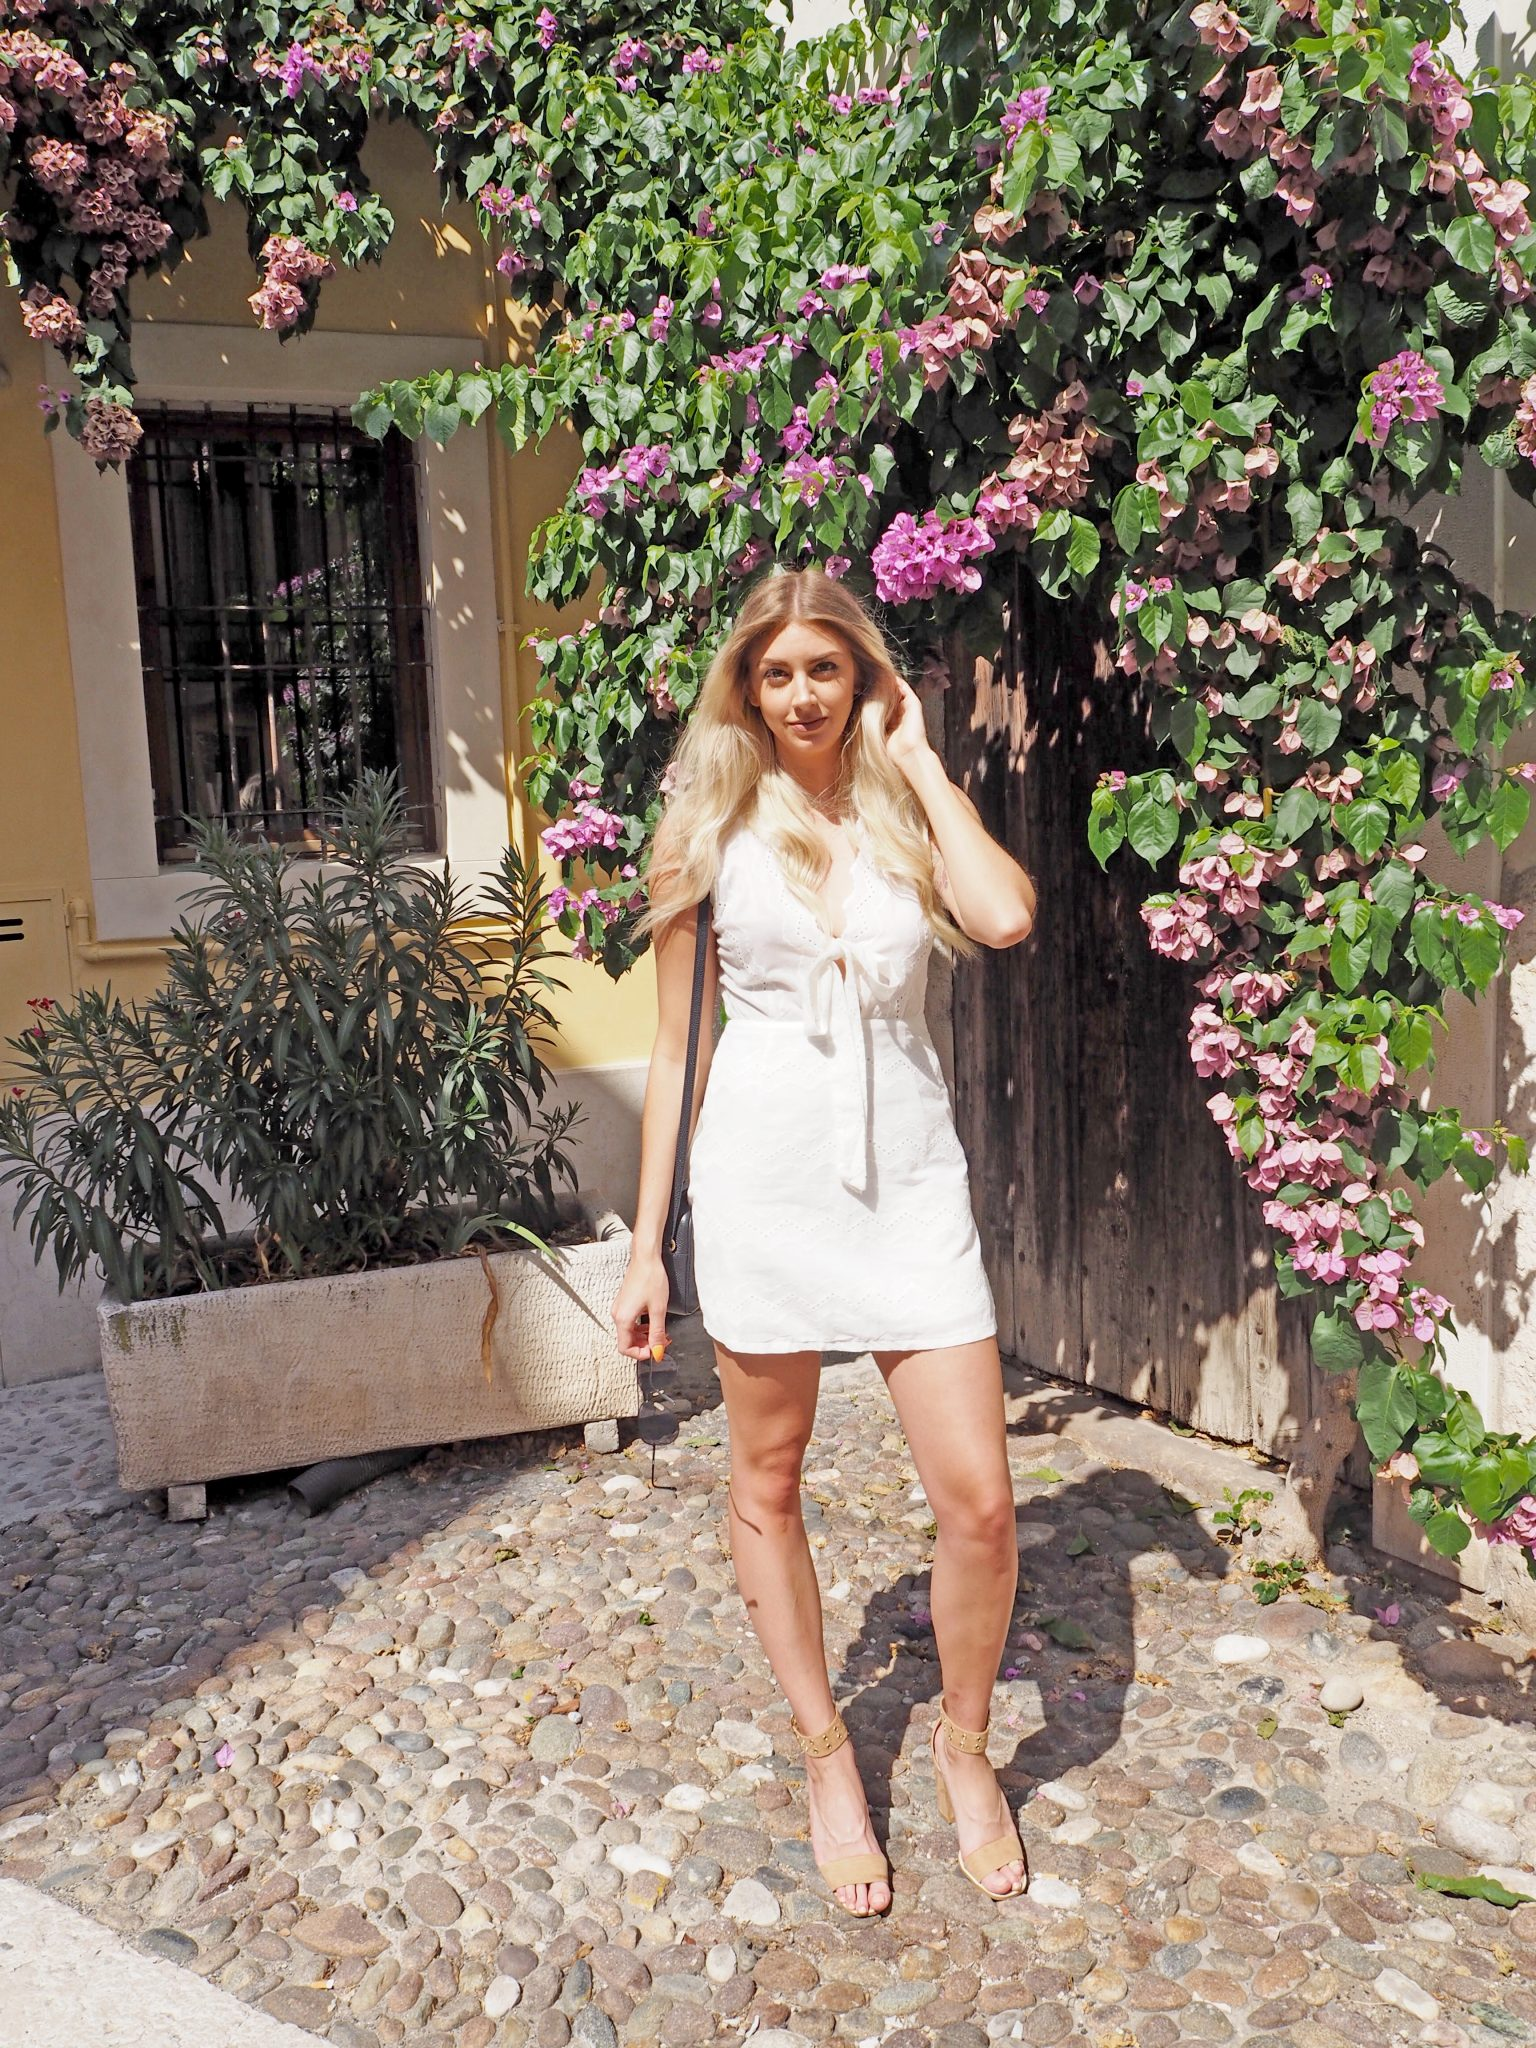 Laura Kate Lucas - Manchester Fashion, Travel and Lifestyle Blogger | Verona Italy Outfit Travel Dress